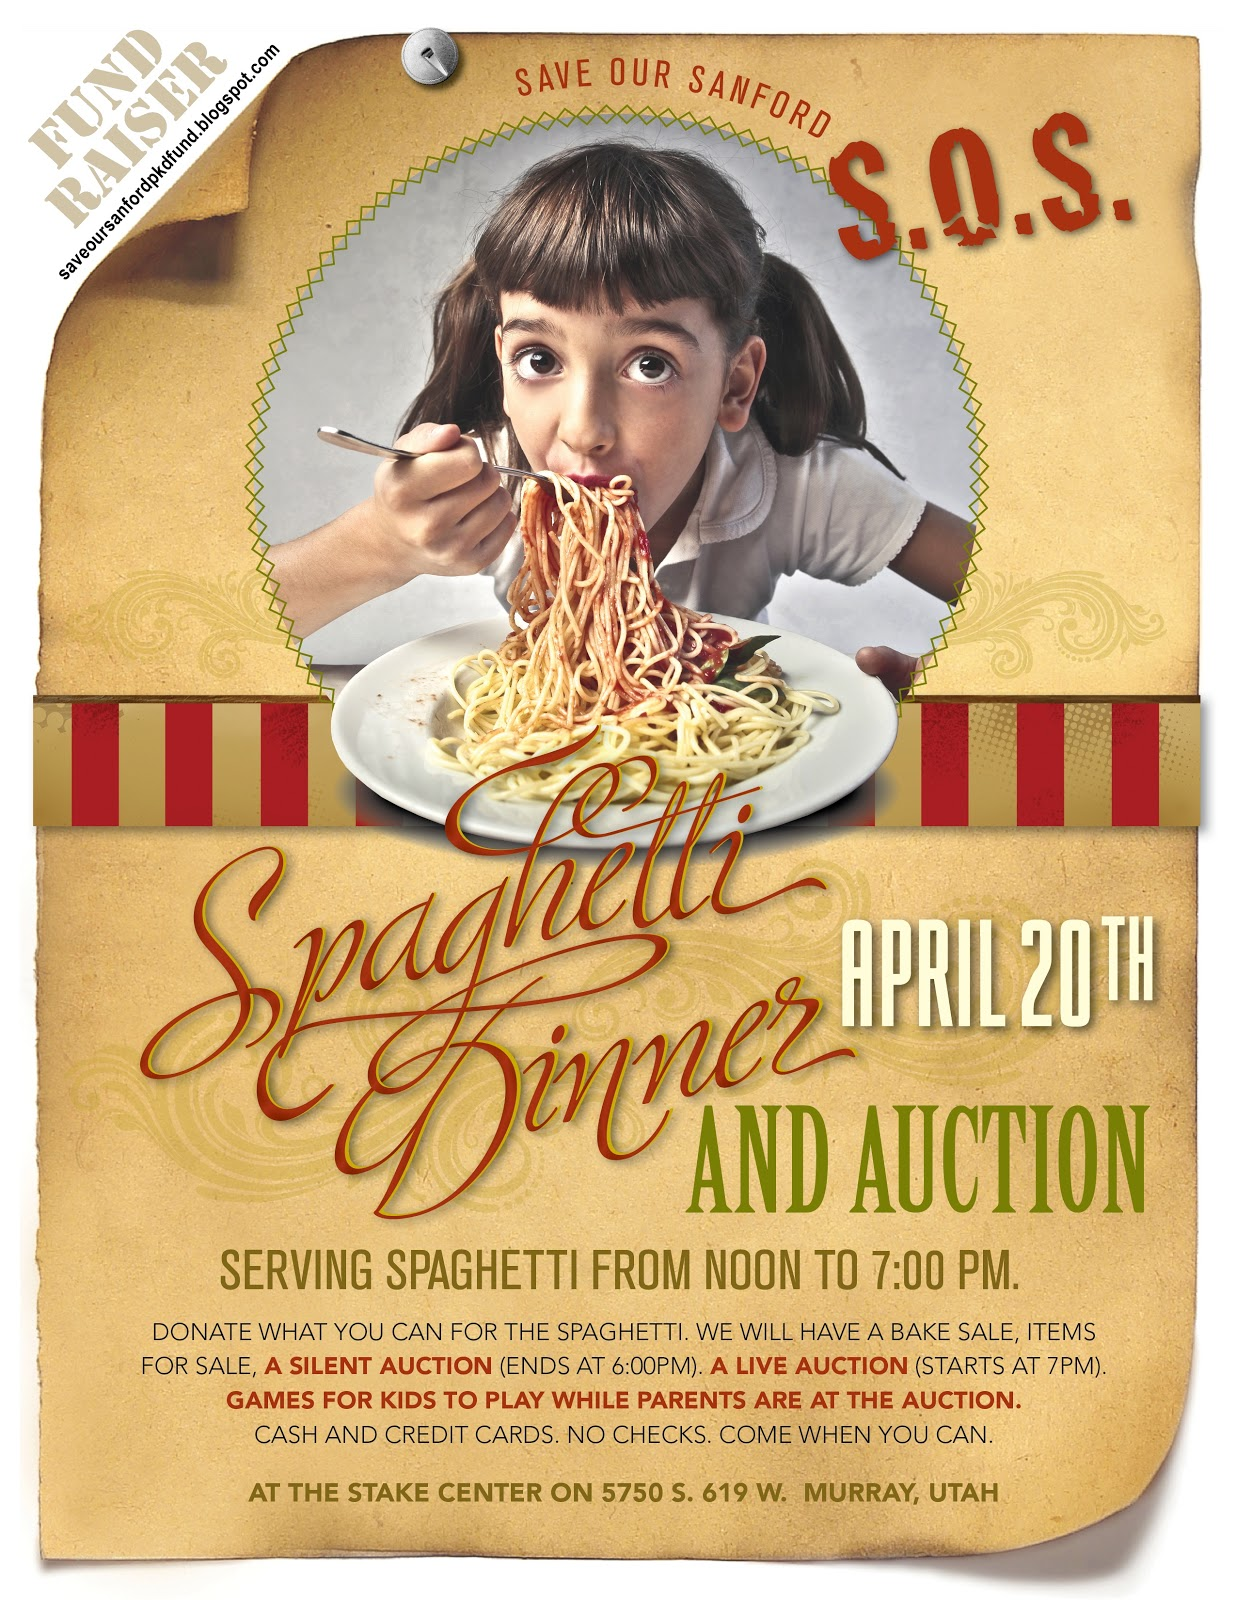 s o s save our sanford pkd fund spaghetti dinner auction flyer